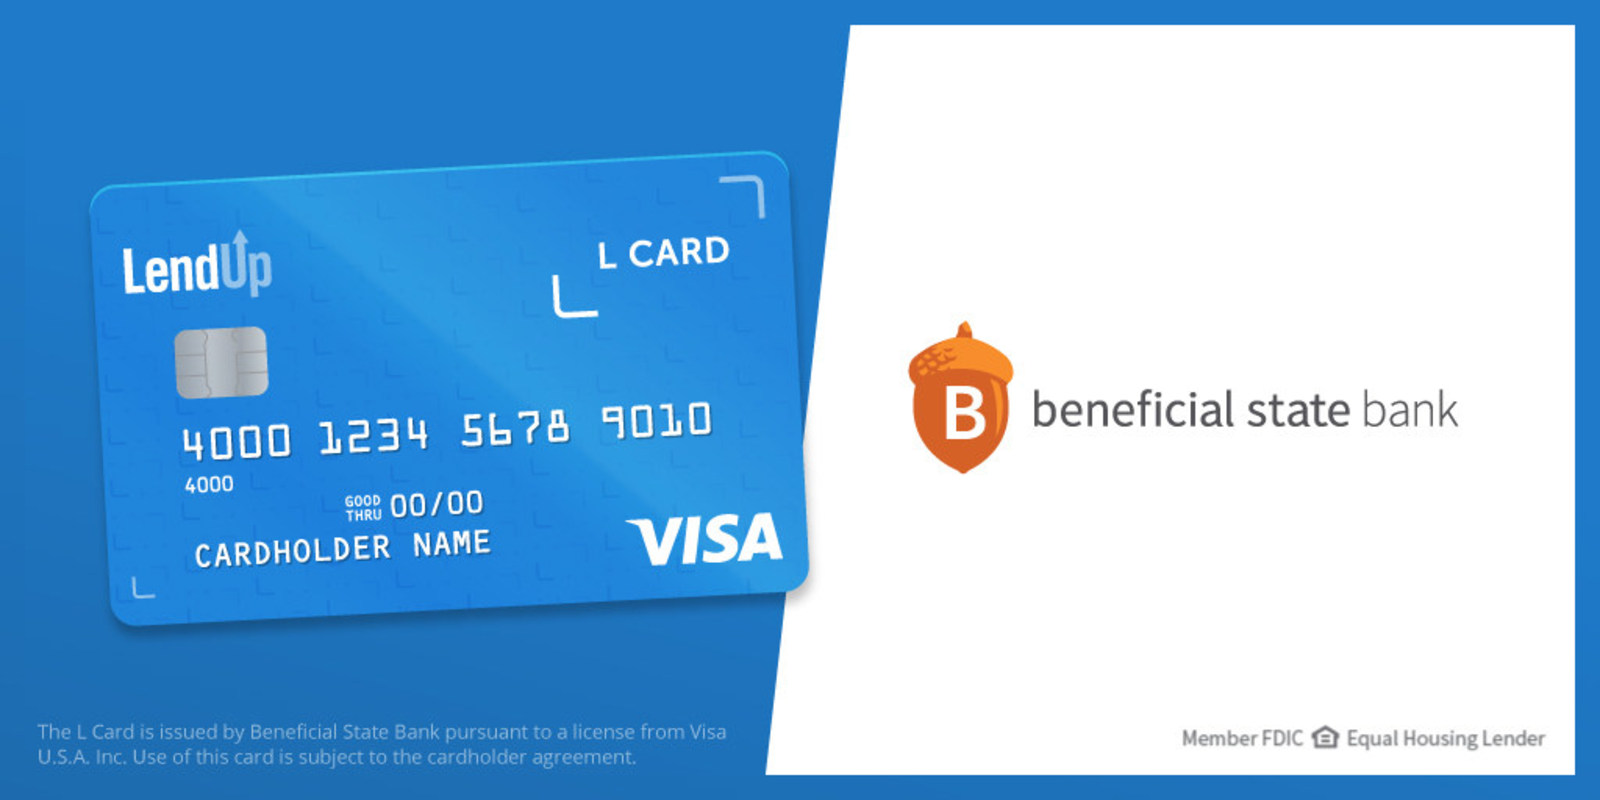 LendUp And Beneficial State Bank Announce Major Expansion Of Credit Card Partnership